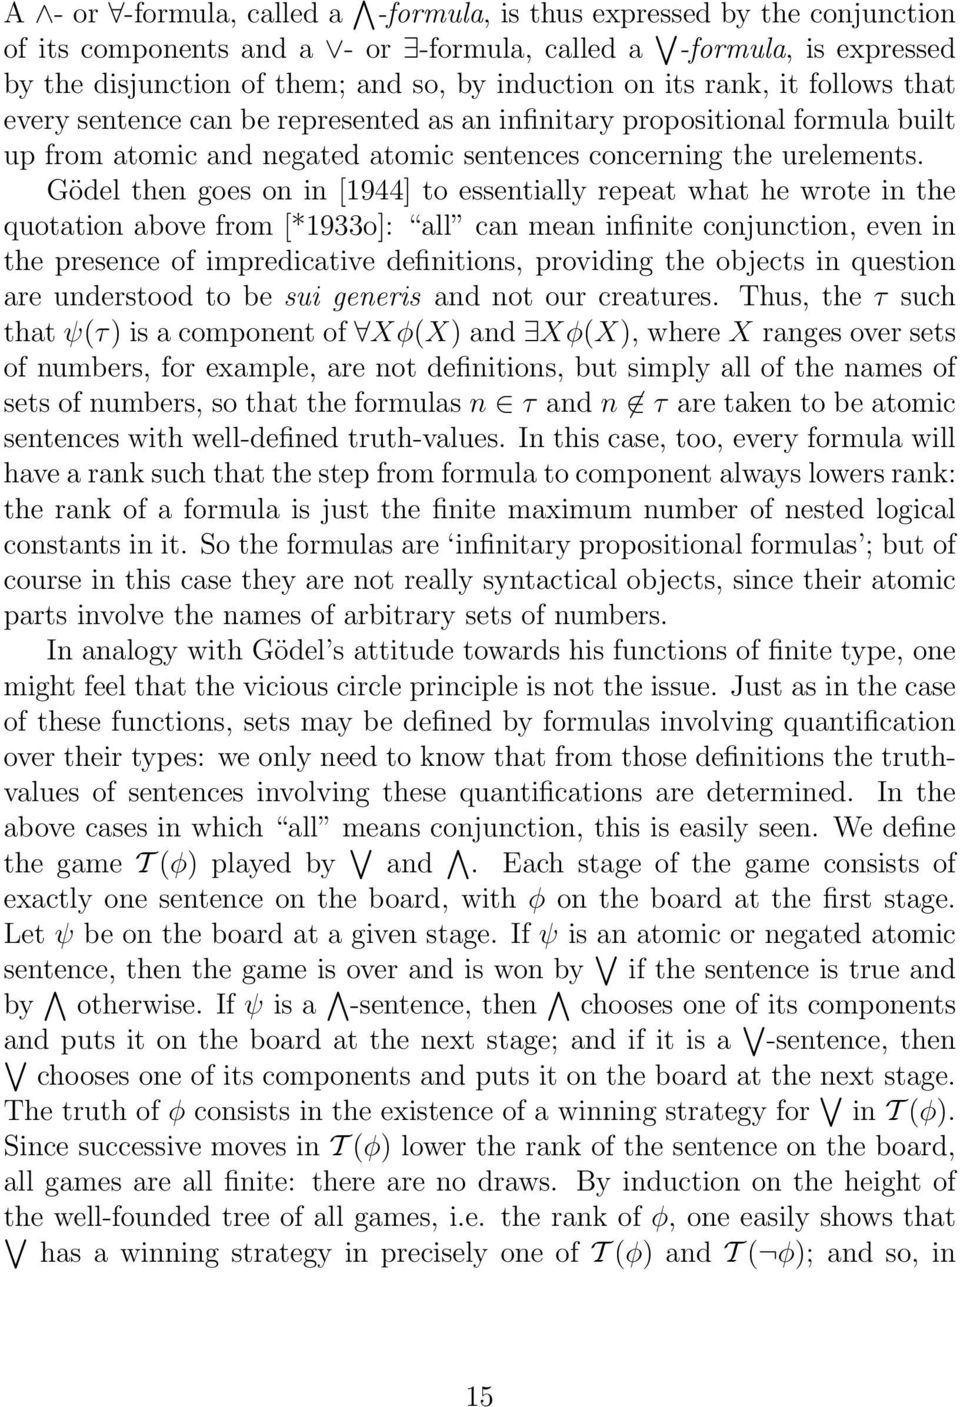 Gödel then goes on in [1944] to essentially repeat what he wrote in the quotation above from [*1933o]: all can mean infinite conjunction, even in the presence of impredicative definitions, providing